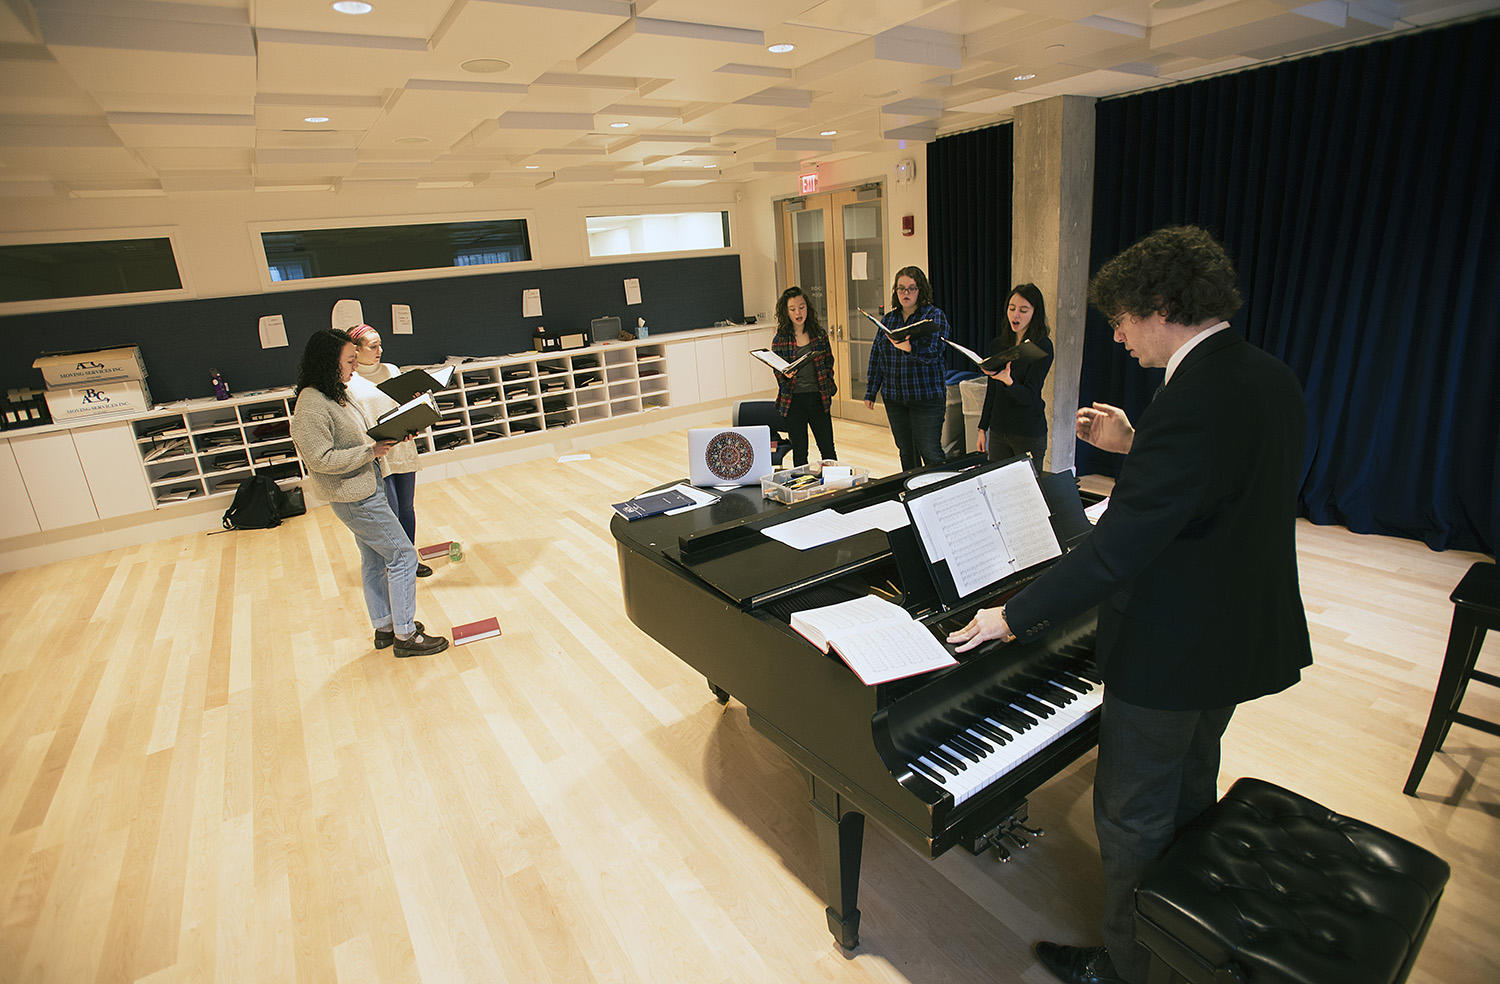 Members of Harvard University Choir rehearse in new choir room